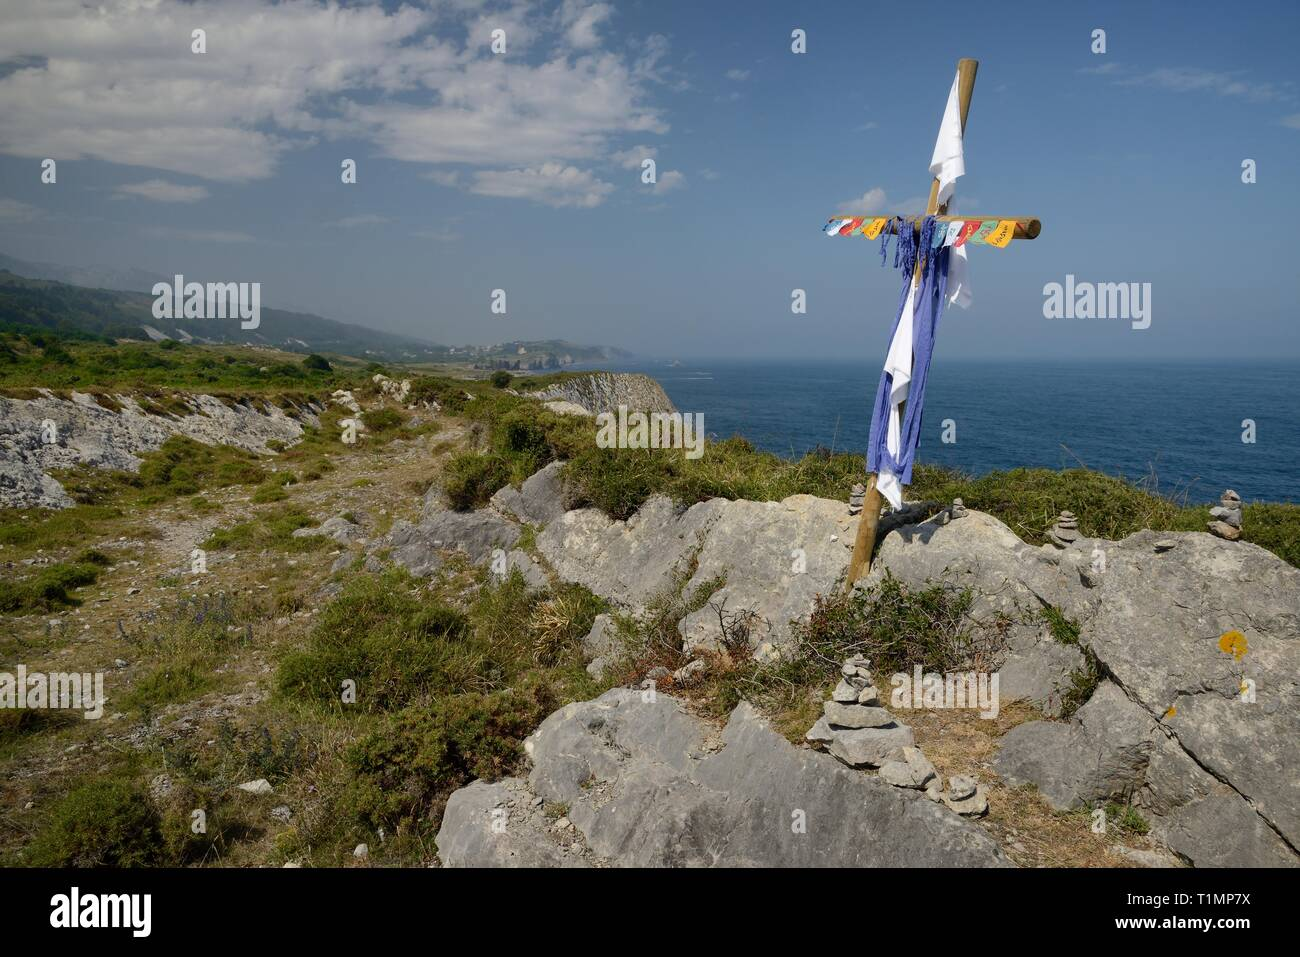 Camino de Santiago coastal route, marked with piles of stones and a cross left by pilgrims, along the cliff edge, near Buelna,  Asturias, Spain. - Stock Image